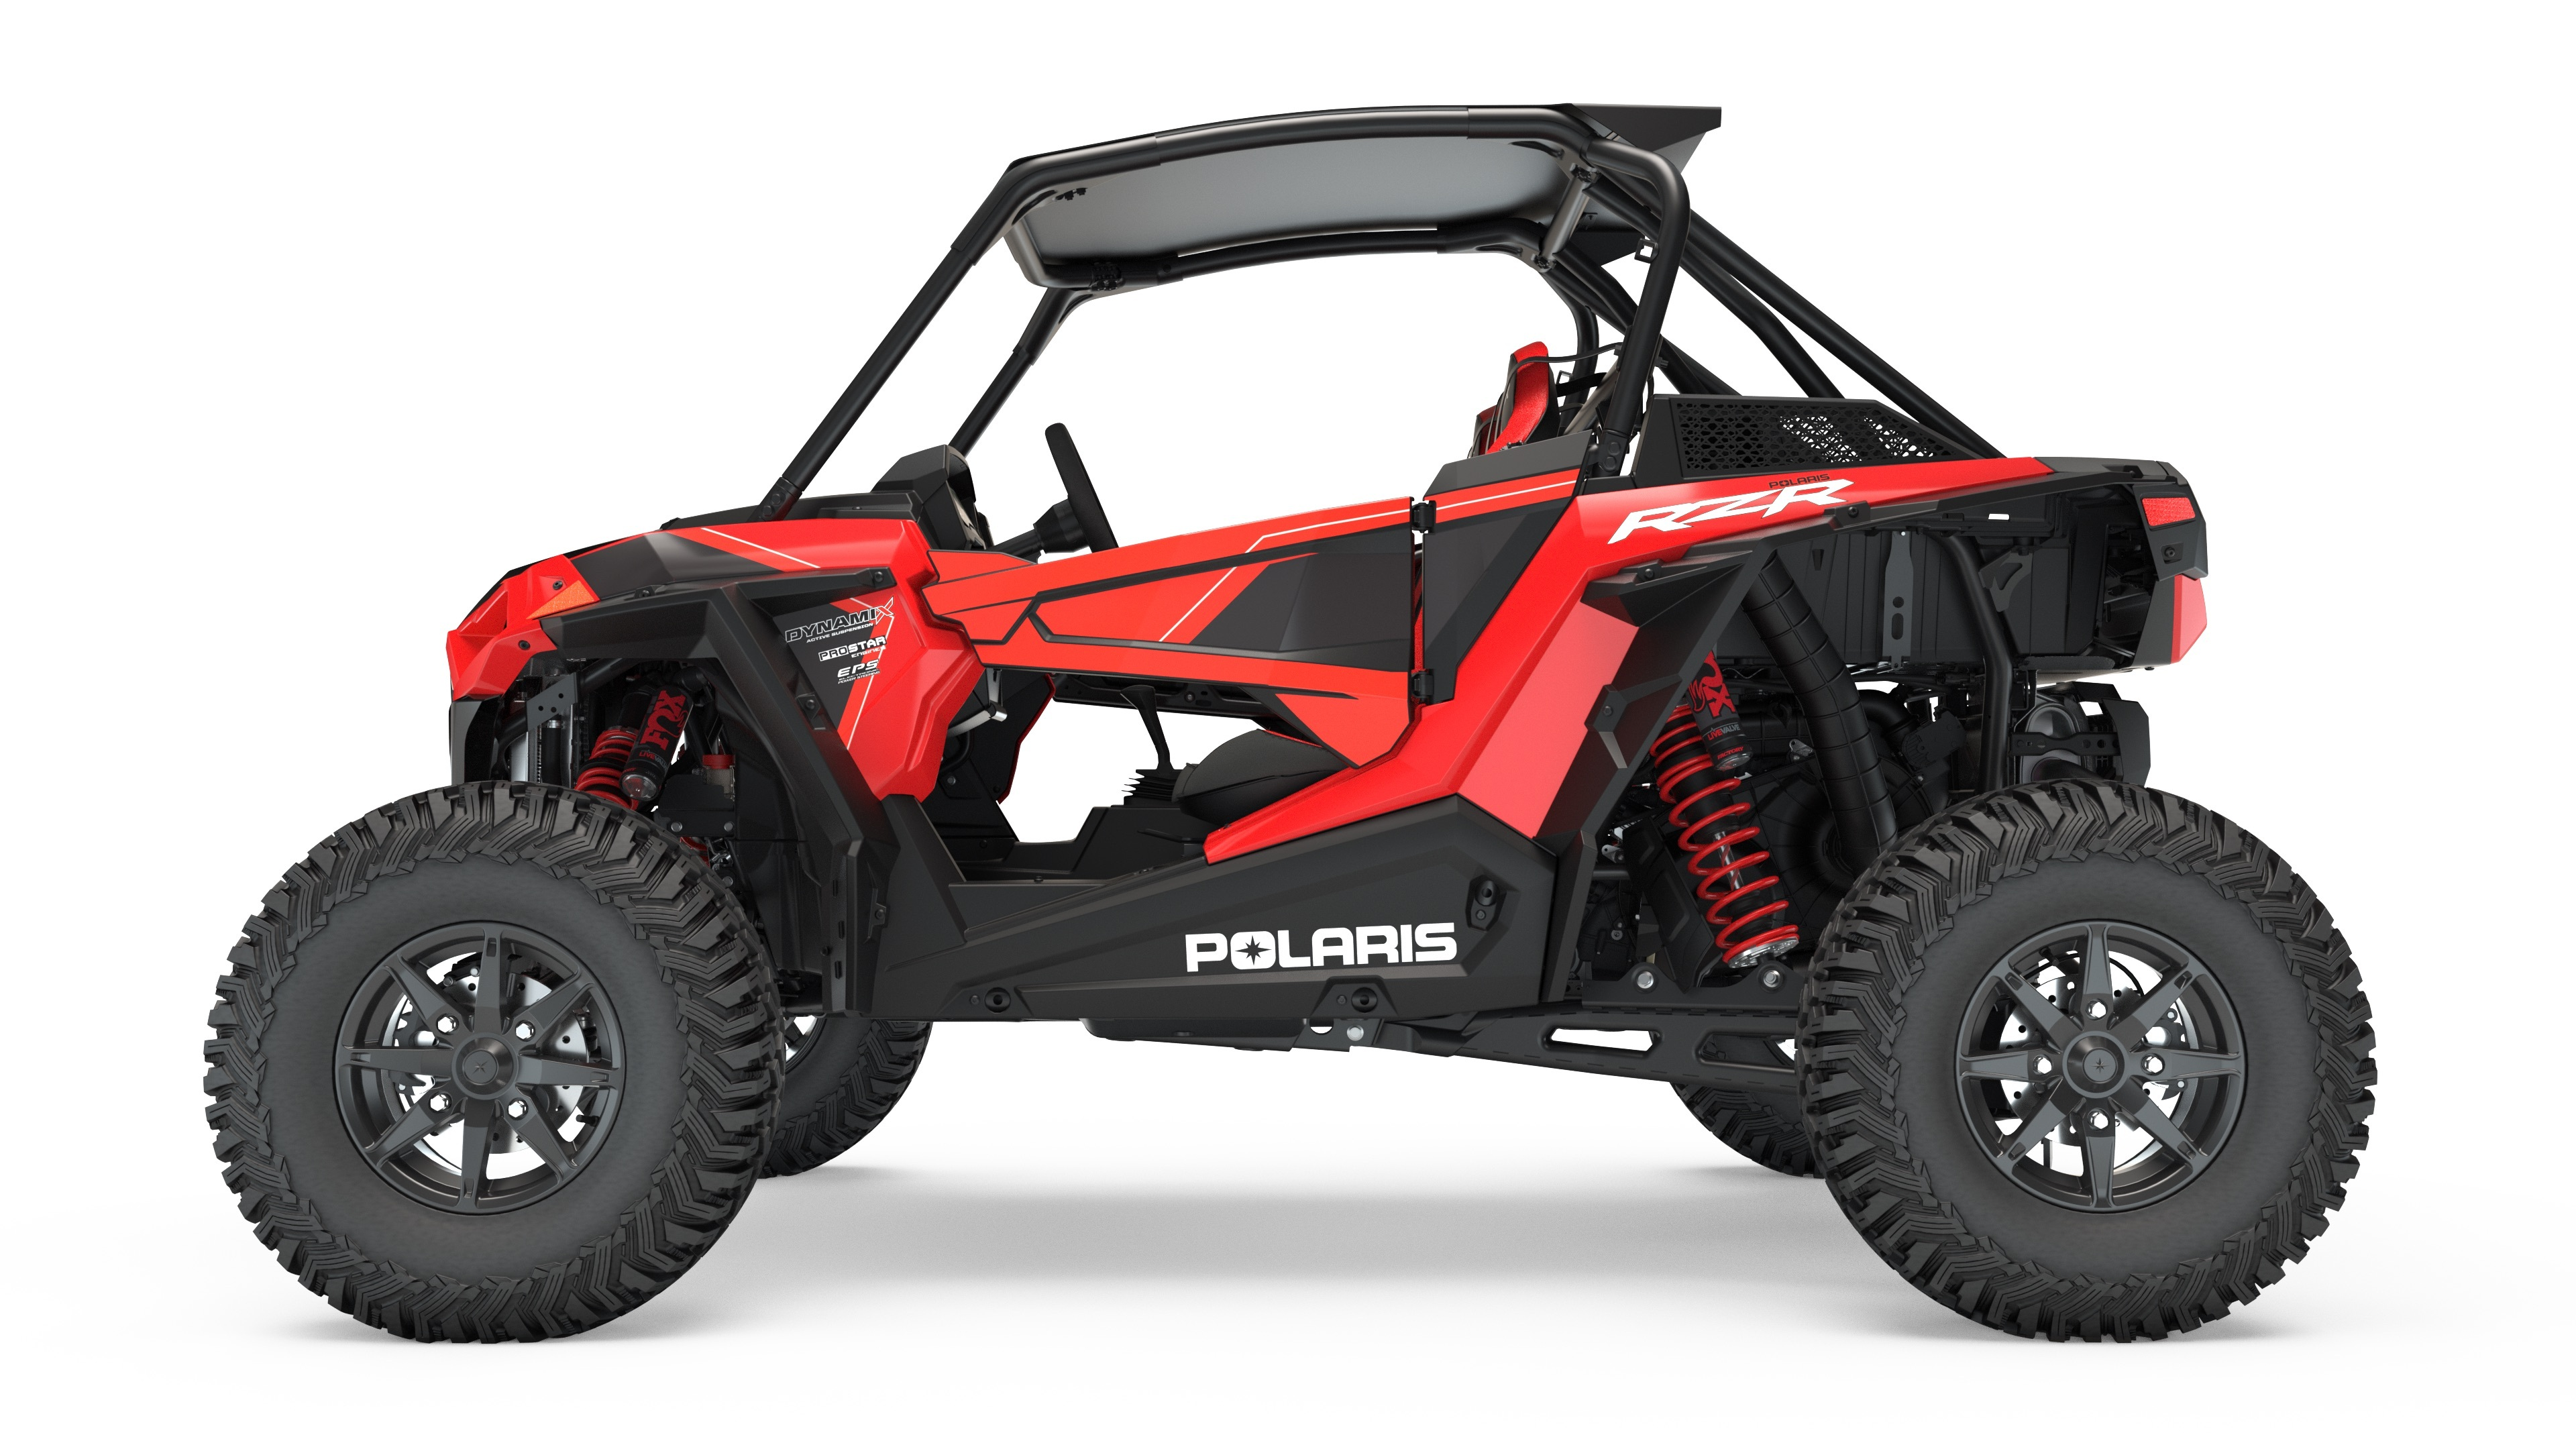 The 72 Inch Polaris Rzr Is Here Introducing The Rzr Xp Turbo S